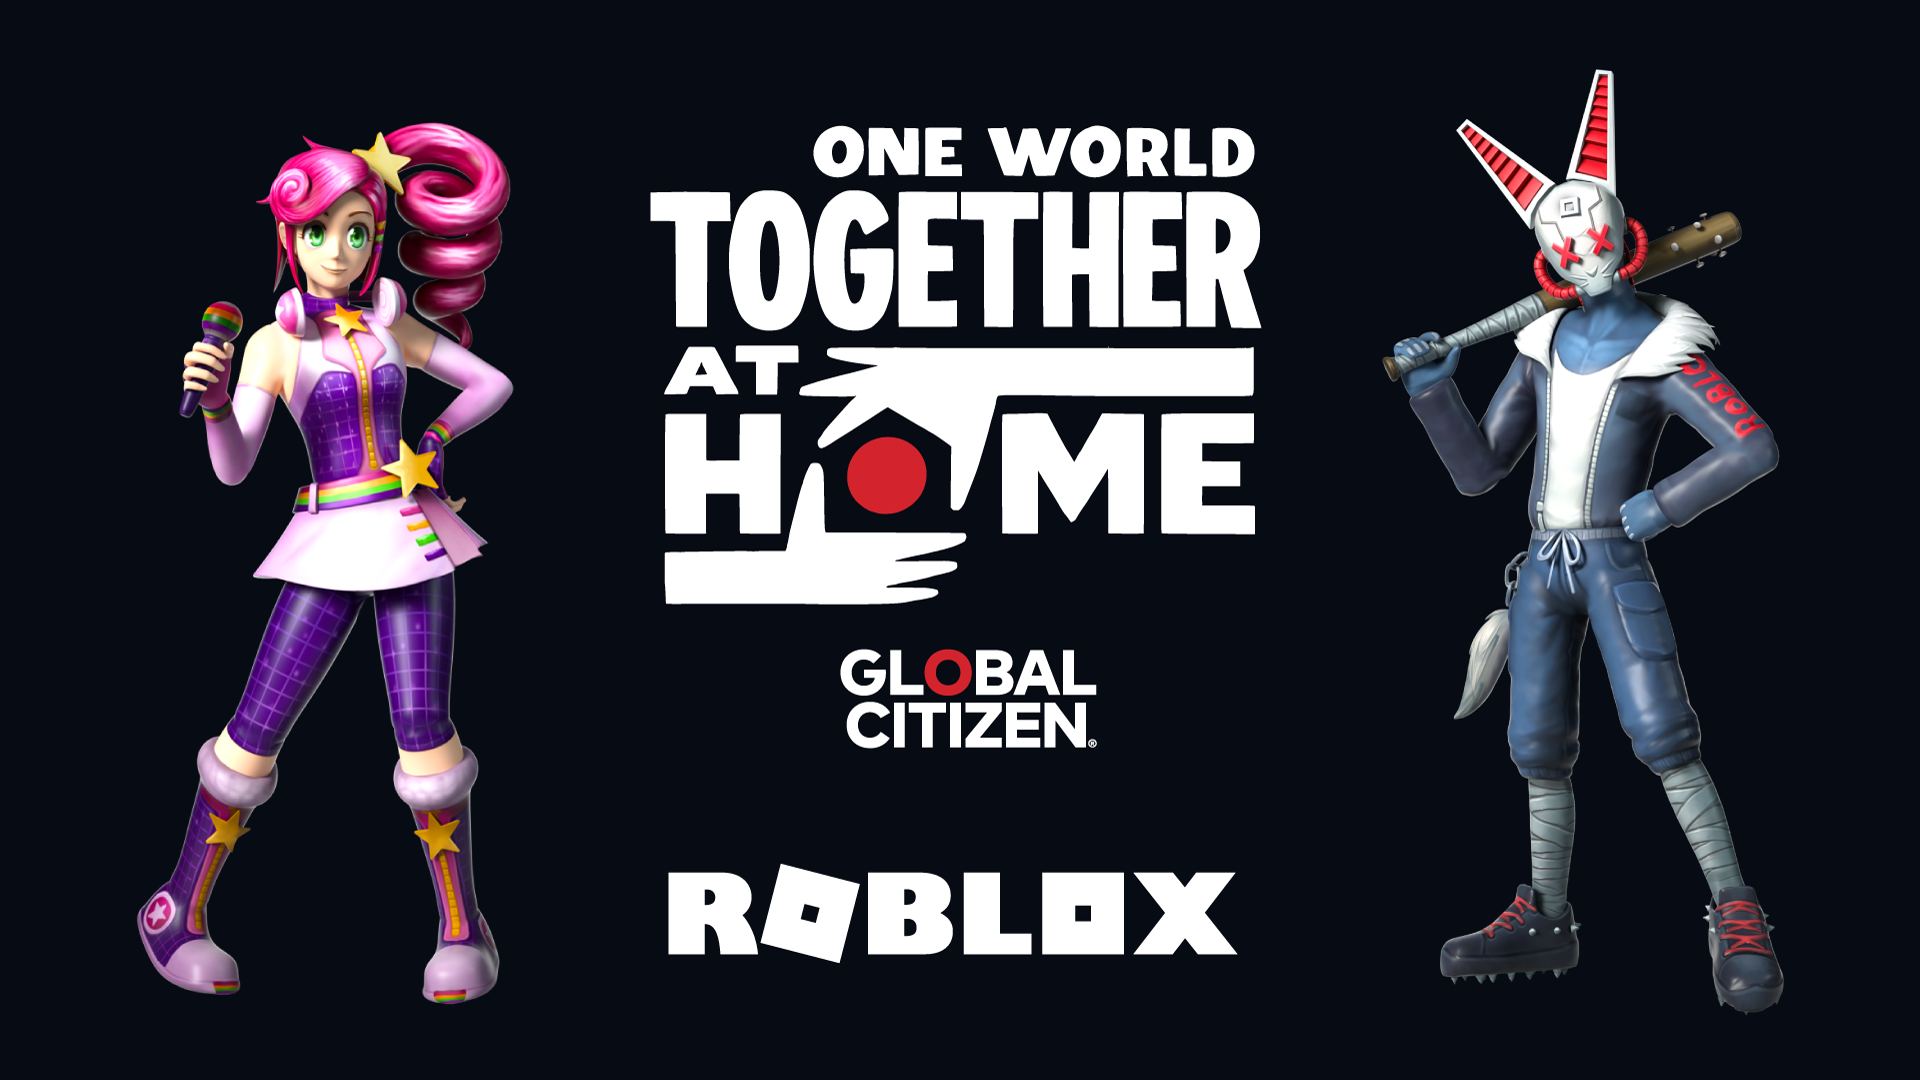 Galaxy Girl Roblox In 2020 Roblox First World Christine And The Queens